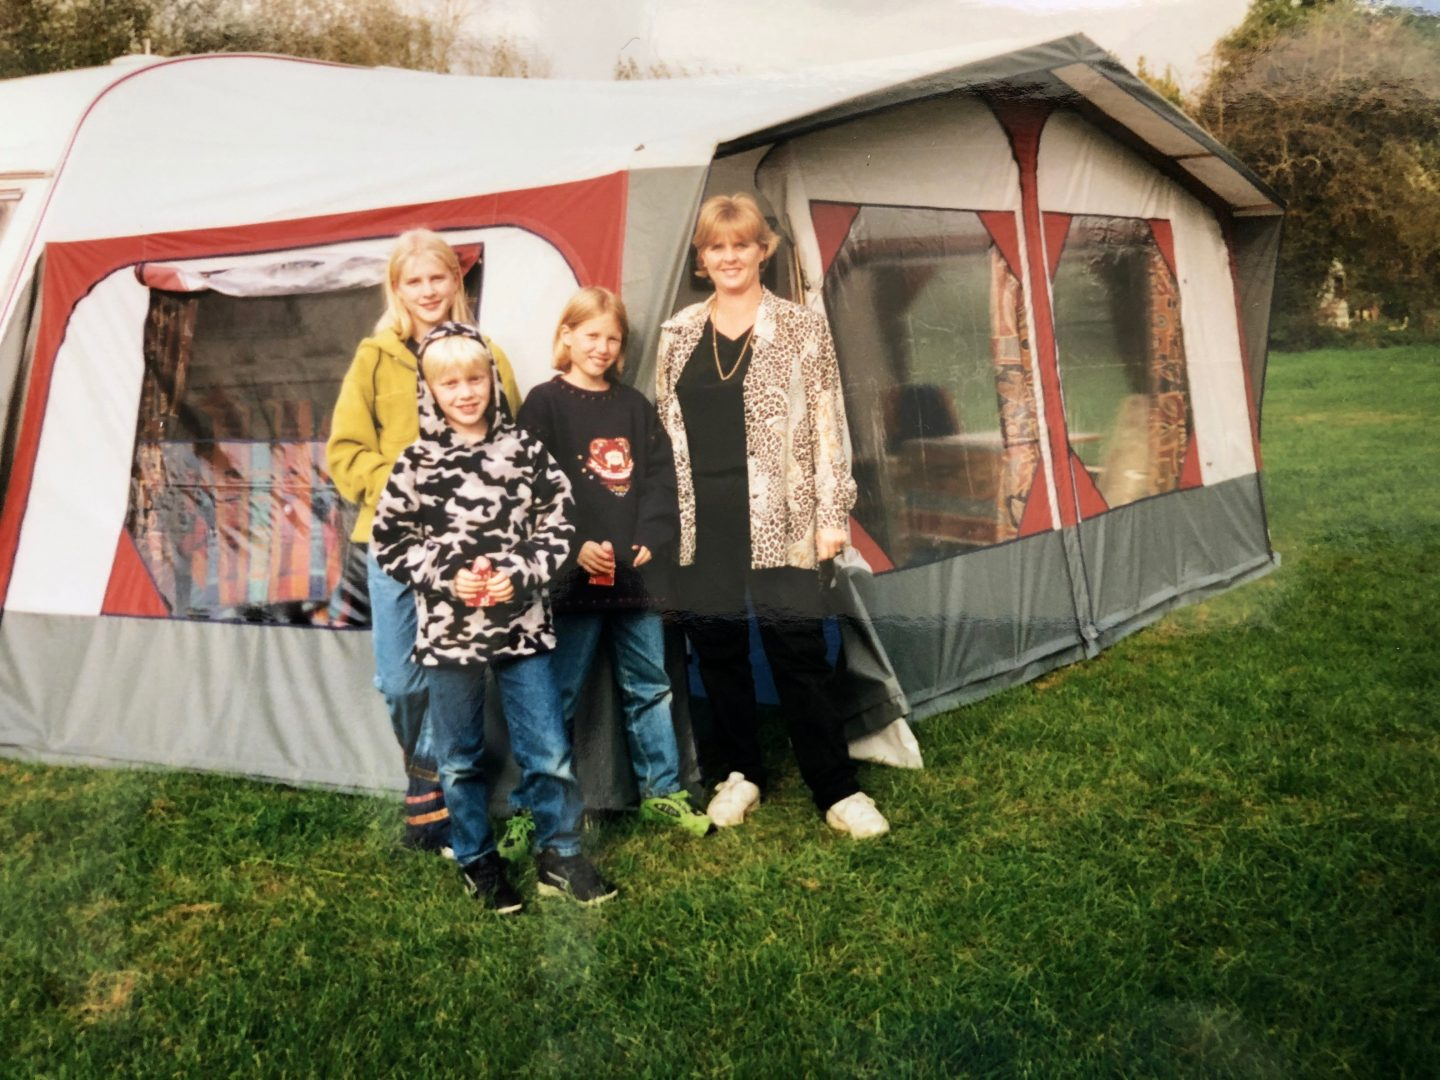 A family standing outside the awning of their caravan in the early 2000's